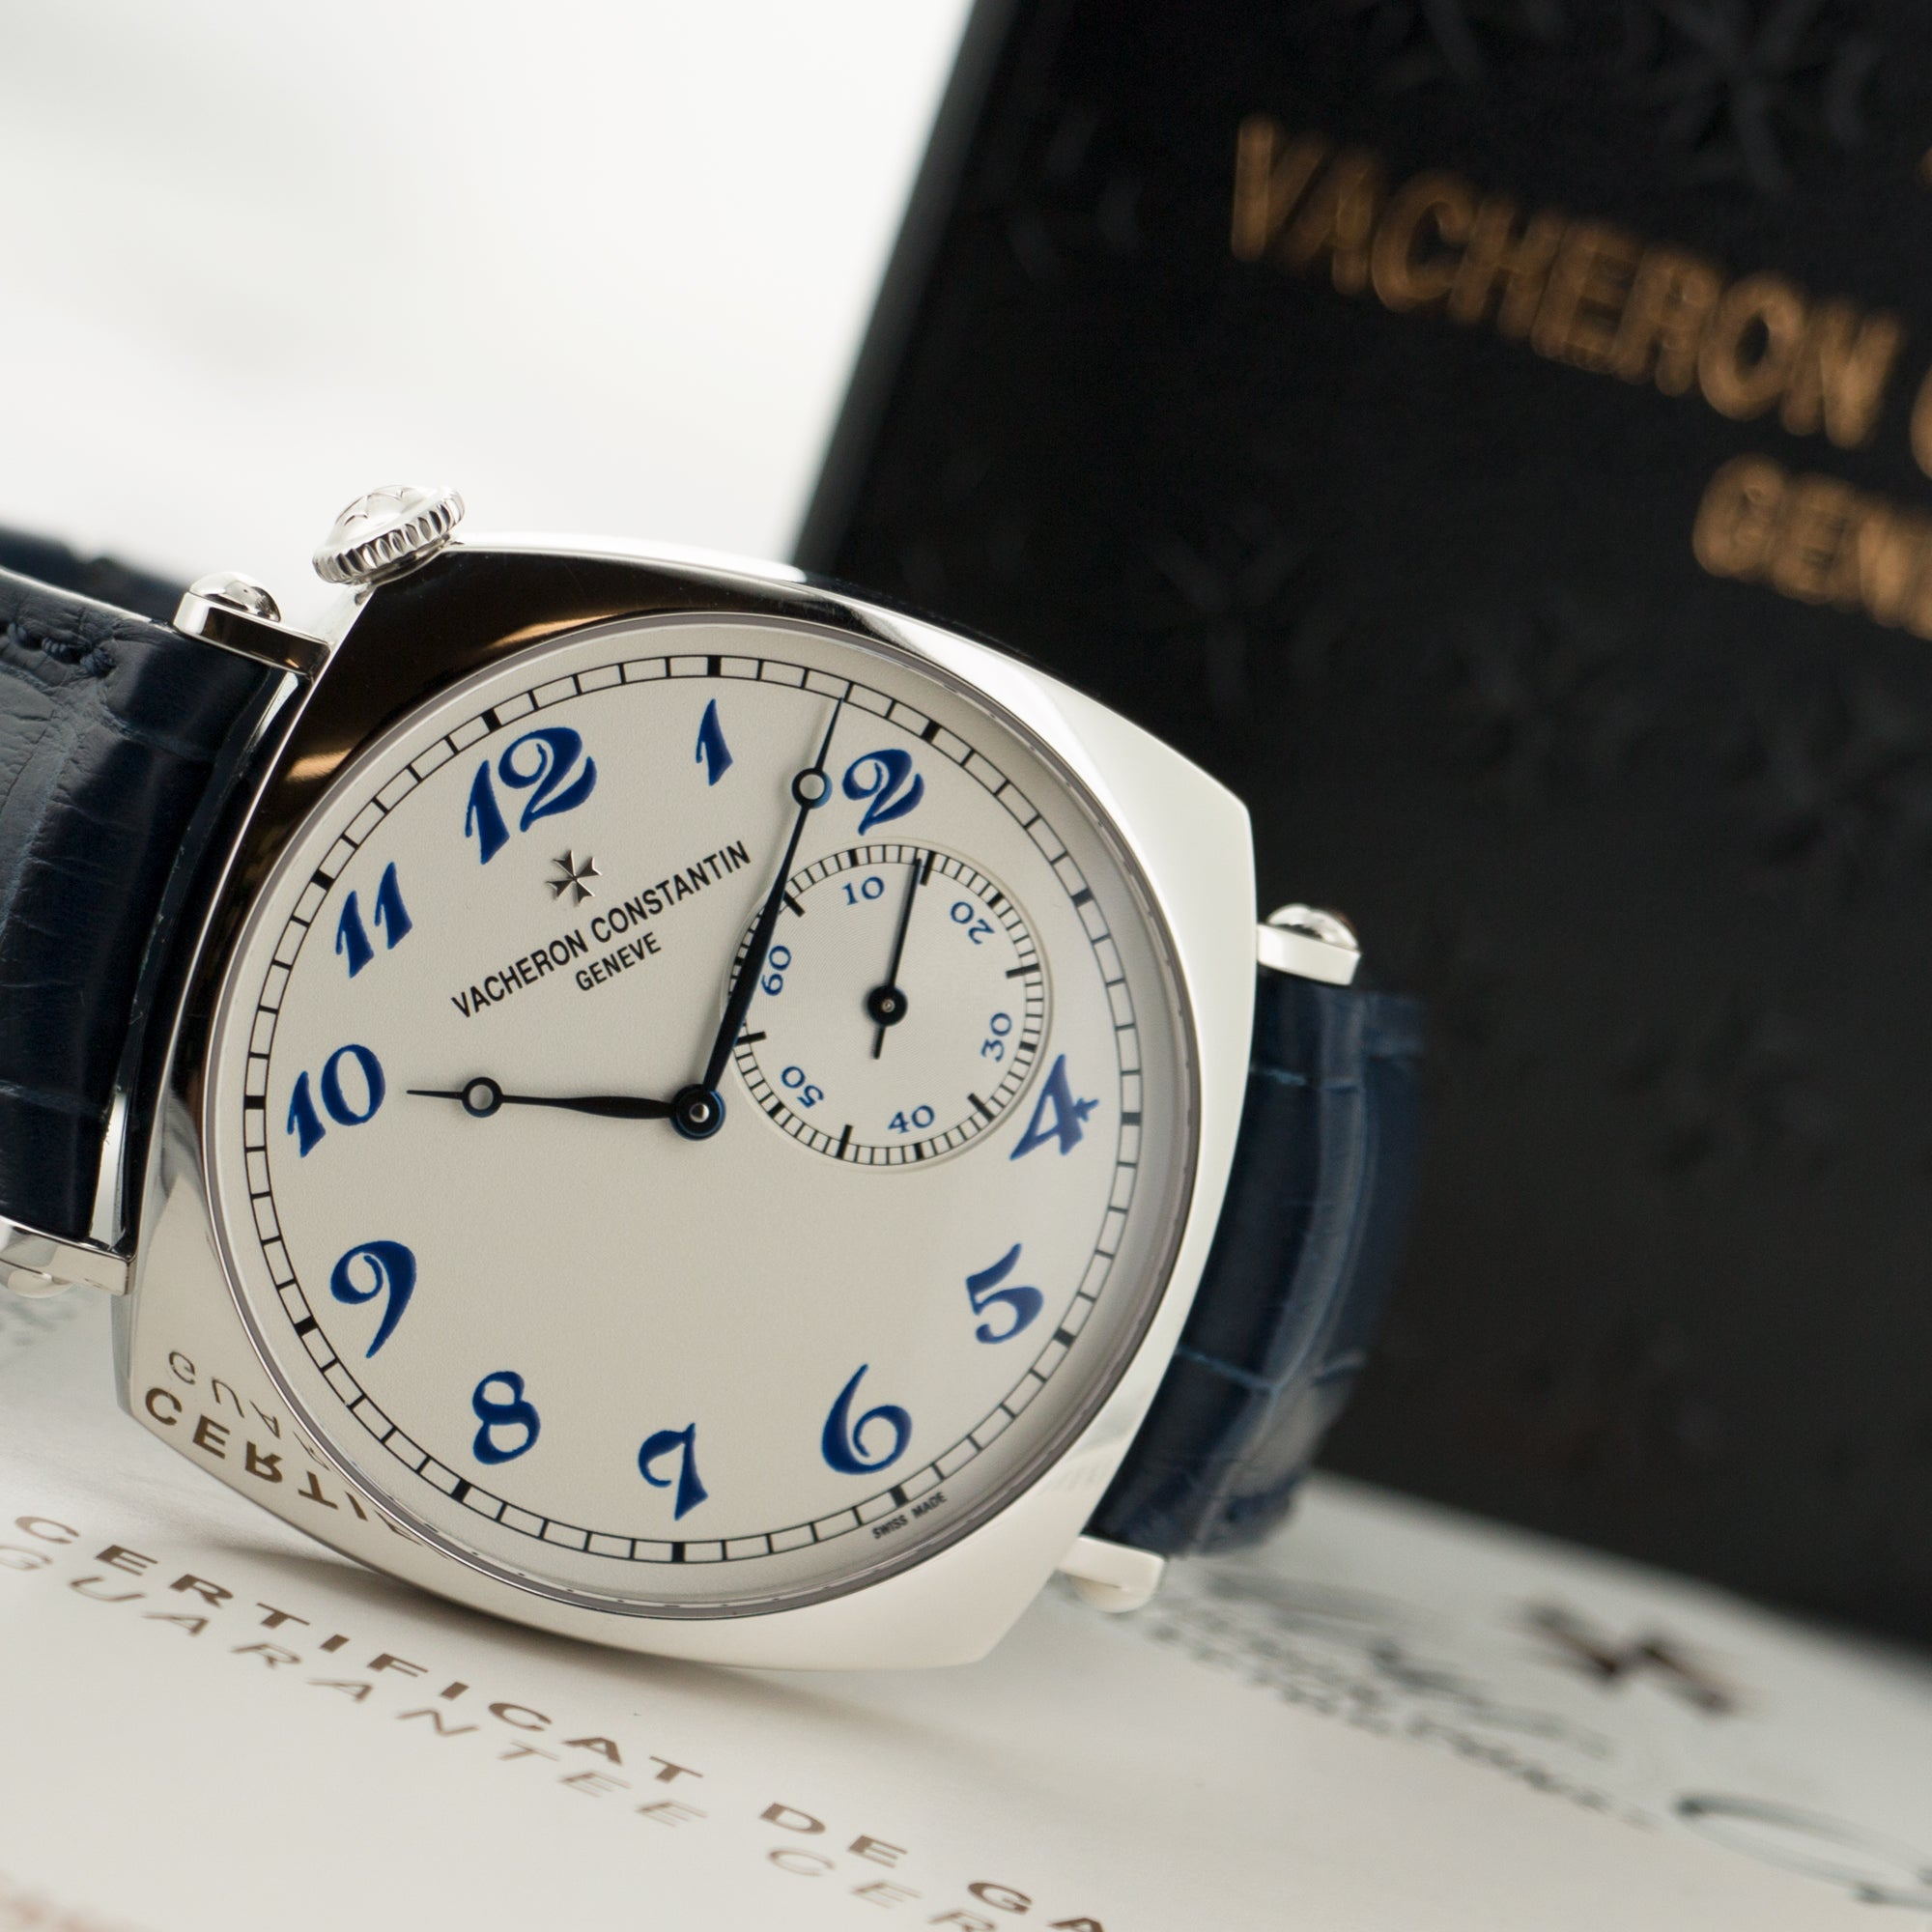 Vacheron Constantin Historiques 1921 82035/000P-b168 Platinum  Like New, Worn a Few Times Gents Platinum White with Blue Arabics 40mm Manual 2017 Blue Crocodile Original Box and Certificate